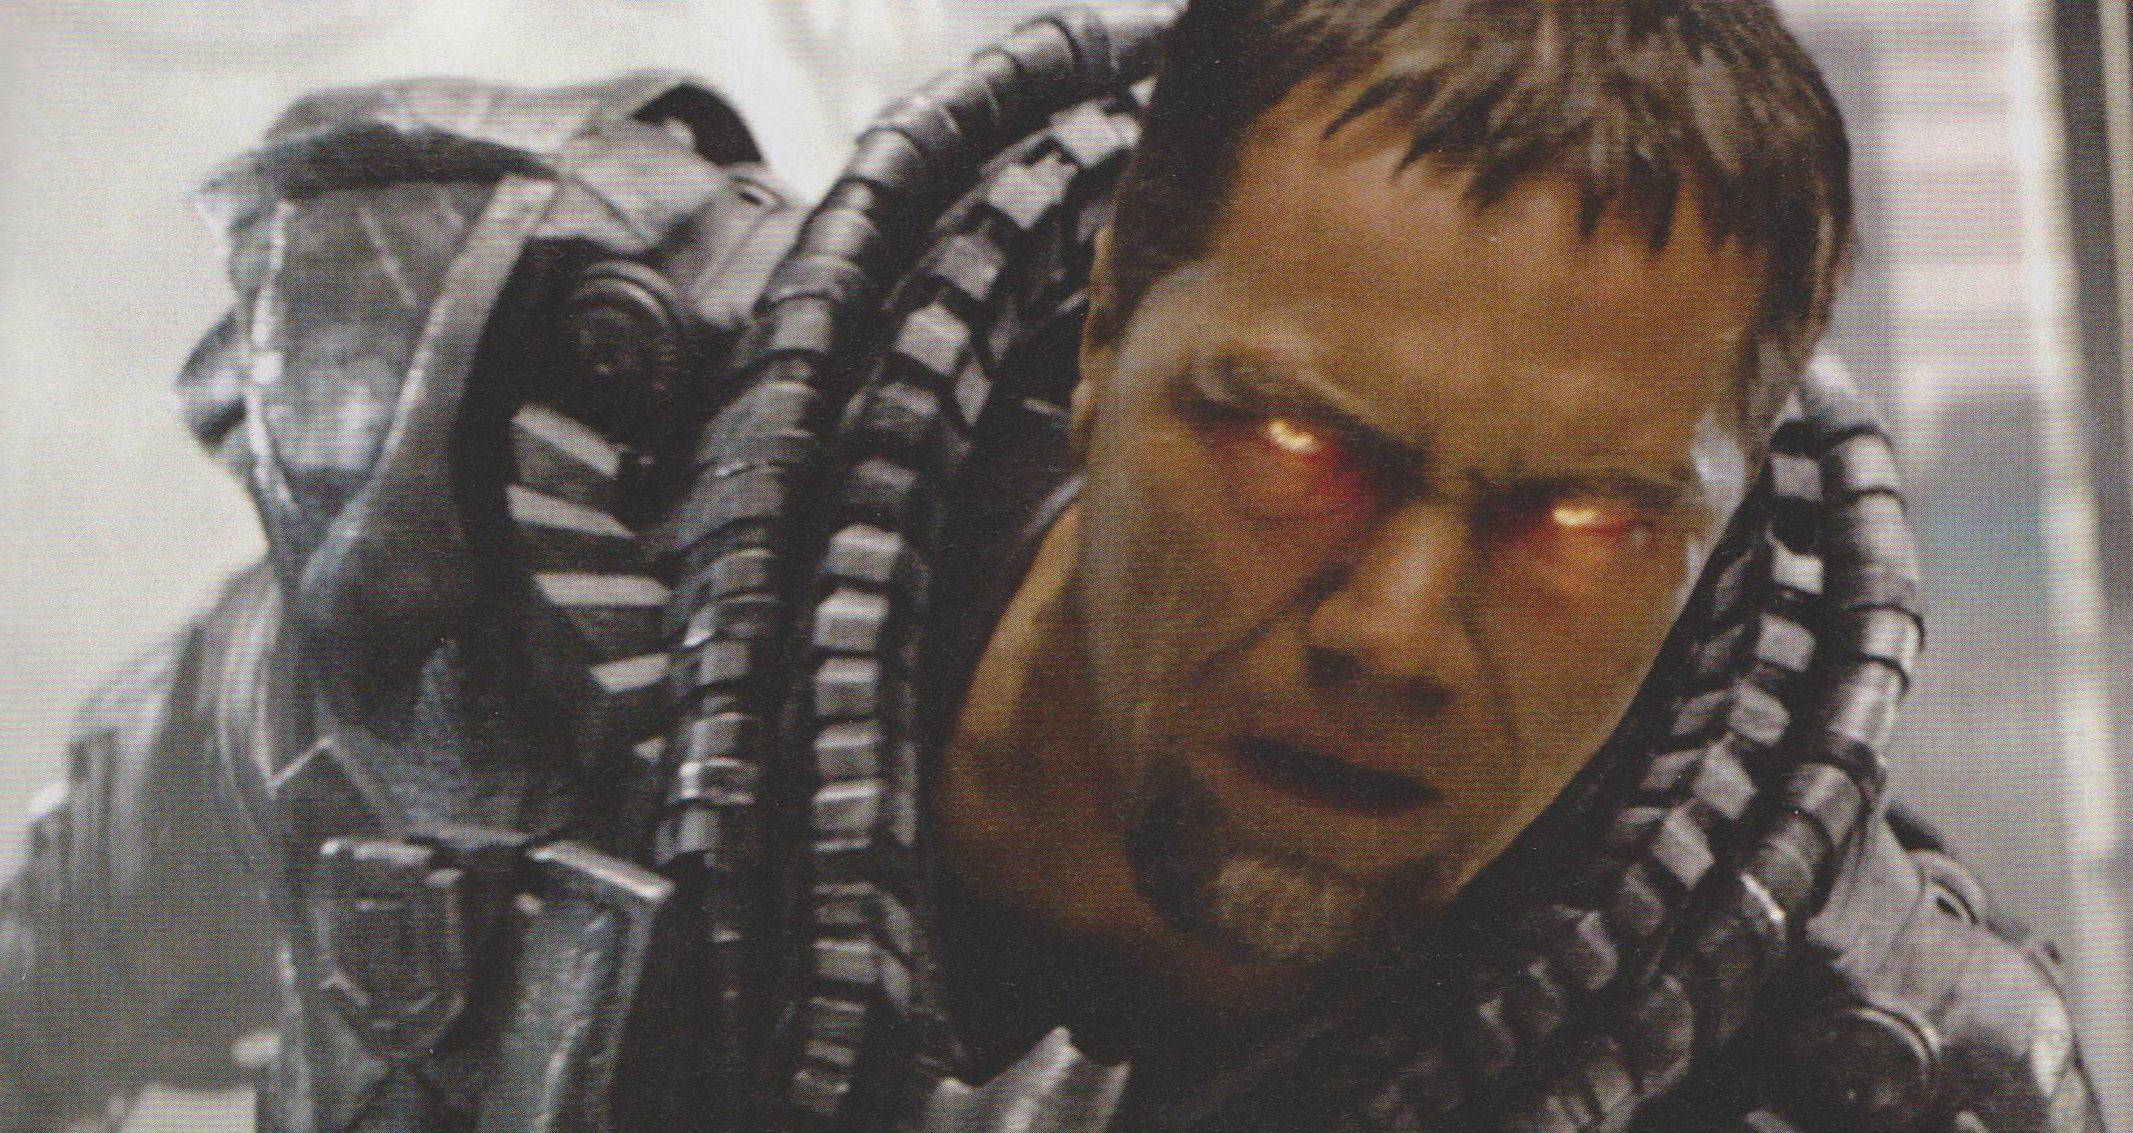 A Few Awesome Photos of Zod, Supes, and Lois from MAN OF STEEL